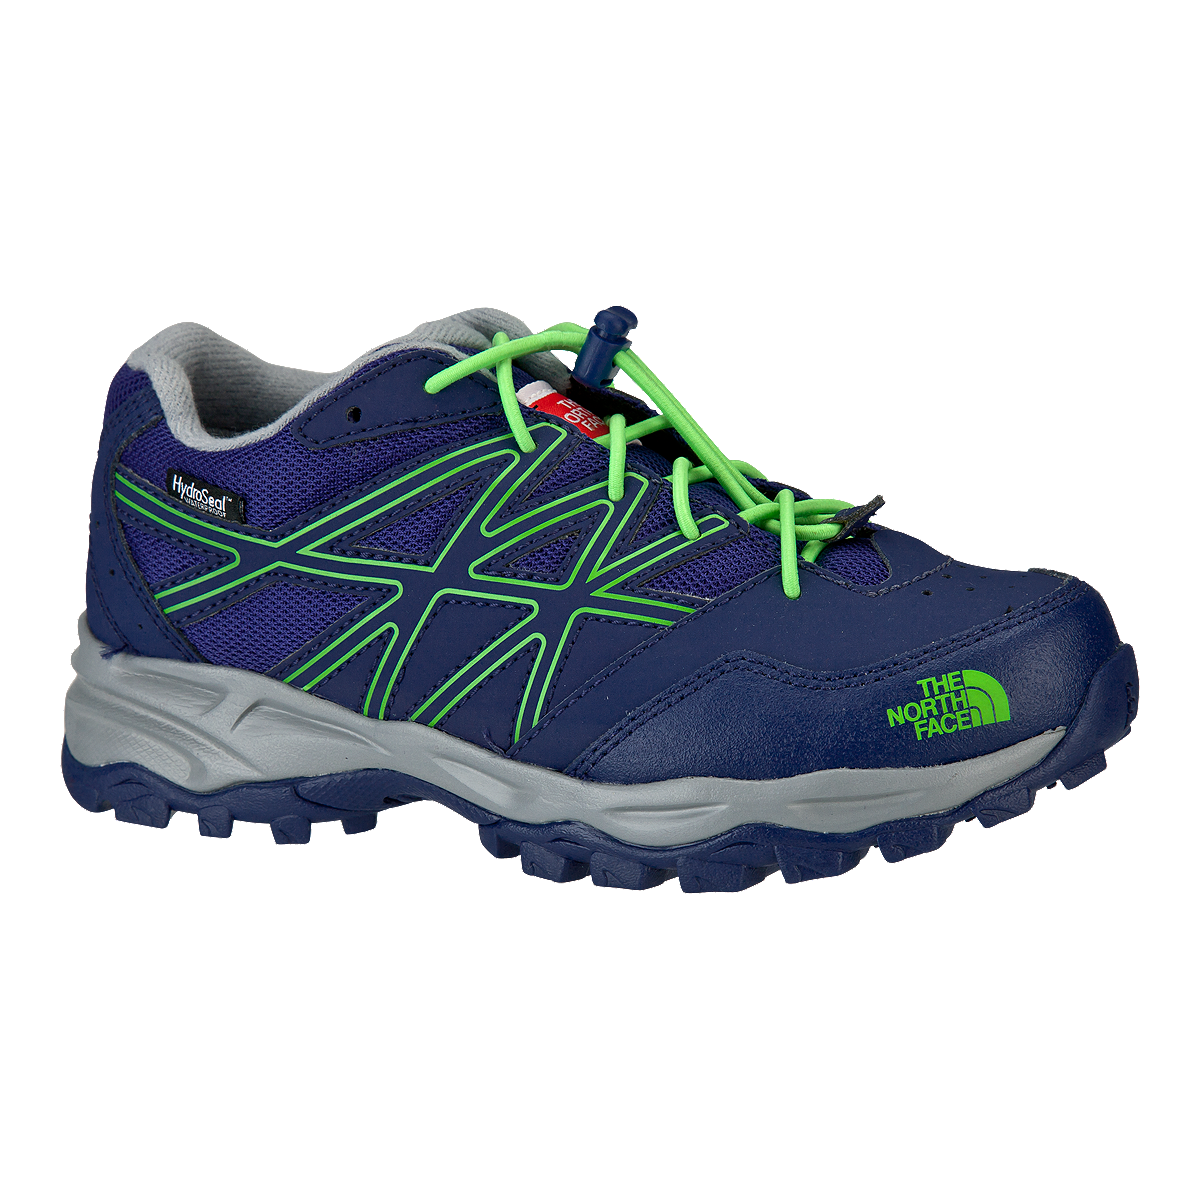 Sport Chek North Face Shoes